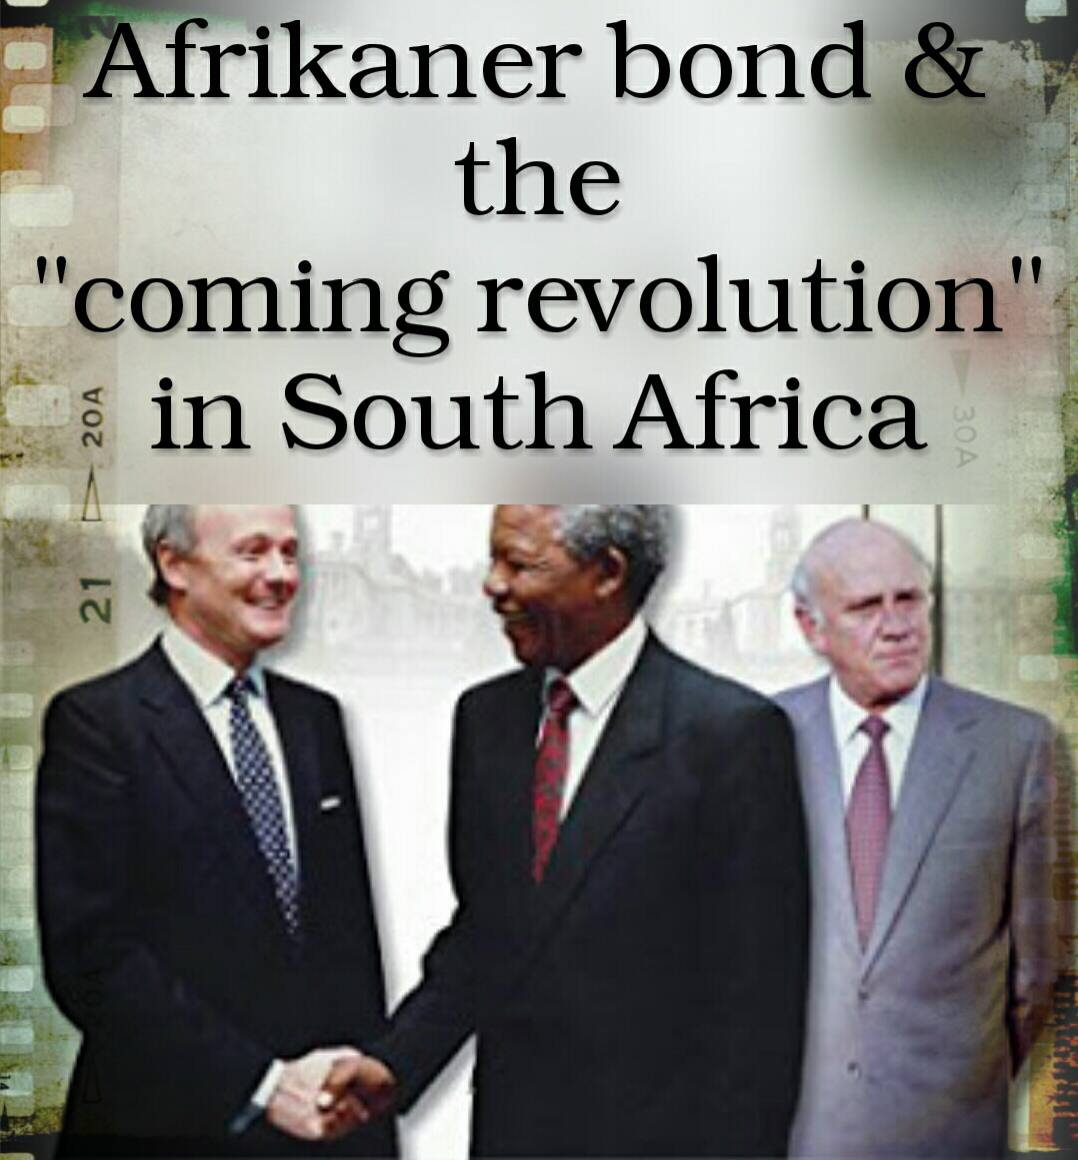 VIDEO: A documentary on the modern Afrikanerbond... The most shocking is the relationship between the Afrikaner bond and the Rothschild family